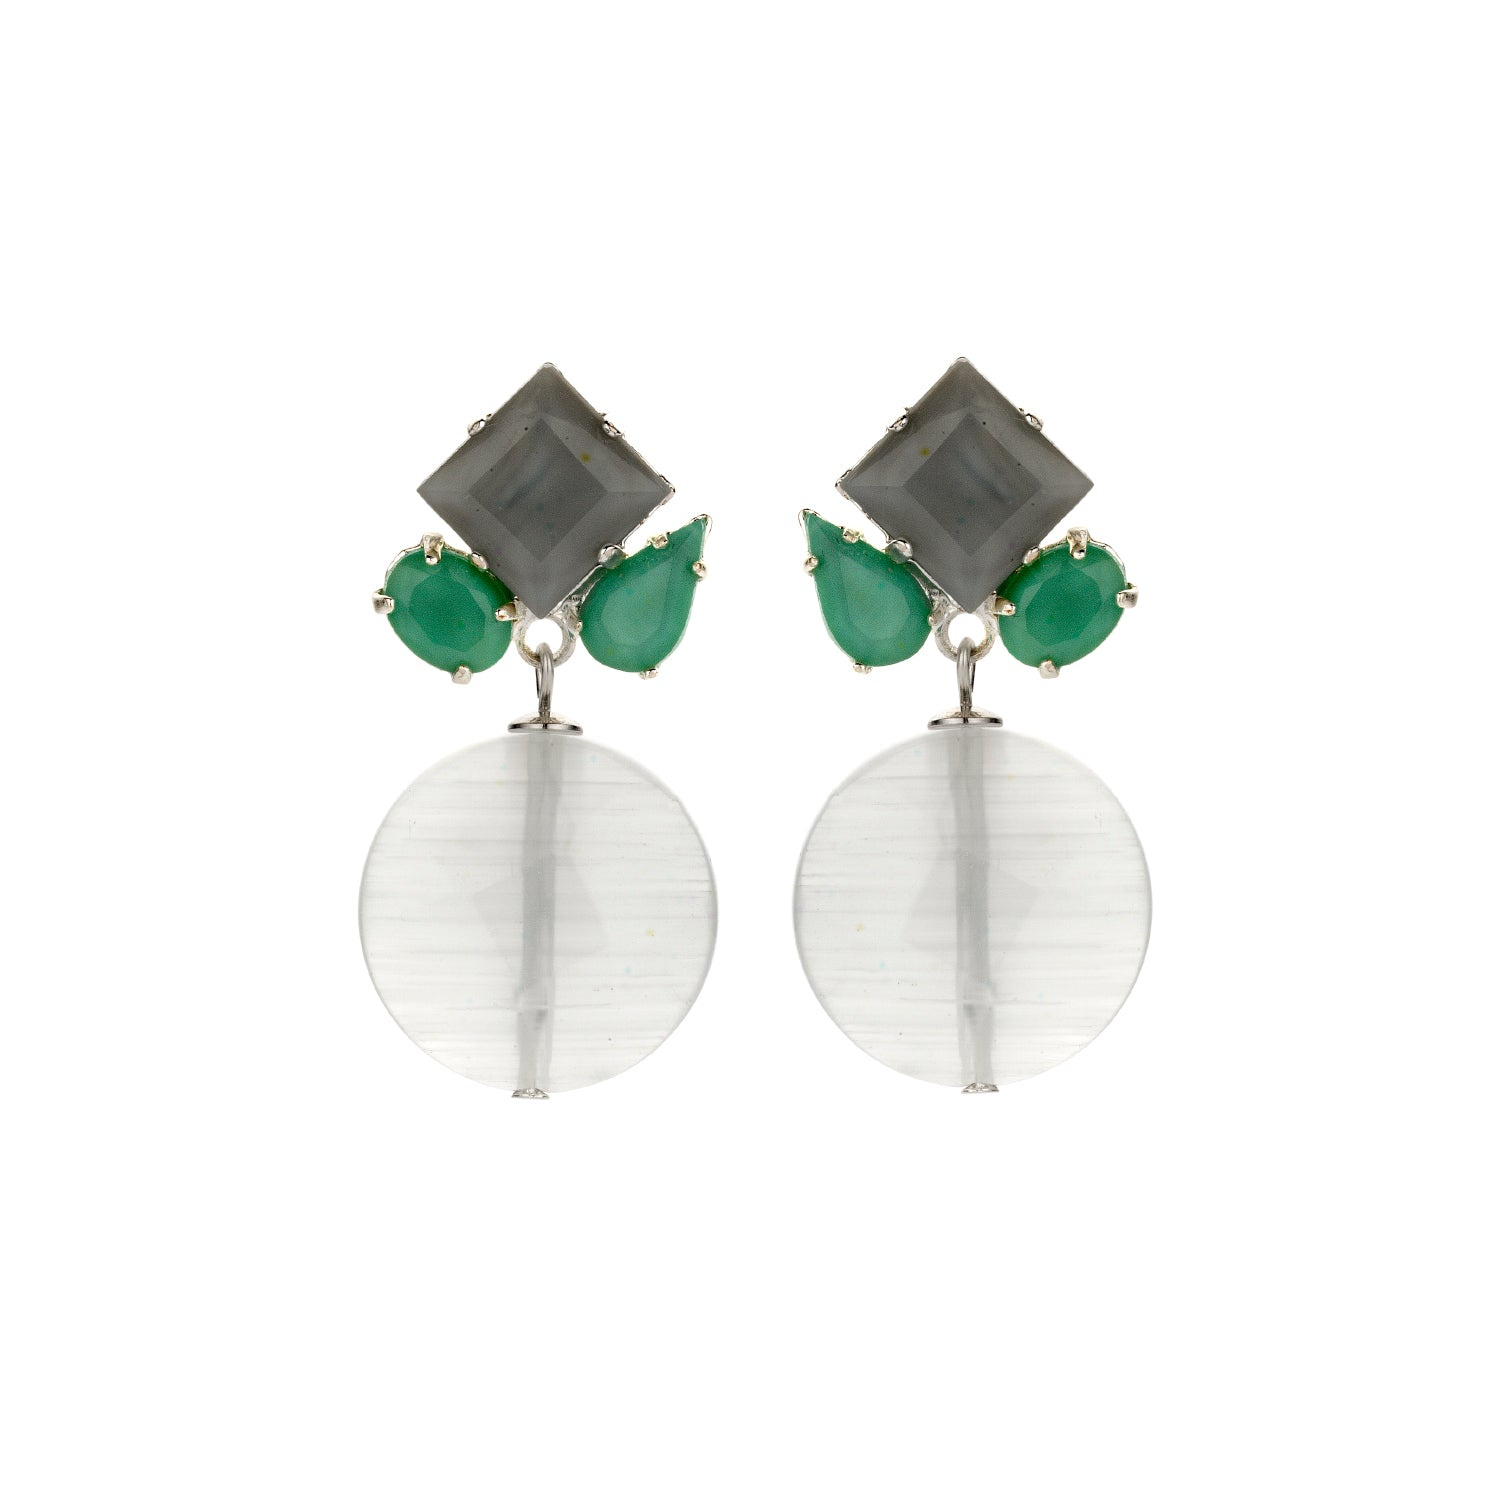 Square mix ice earrings - Souvenirs de Pomme